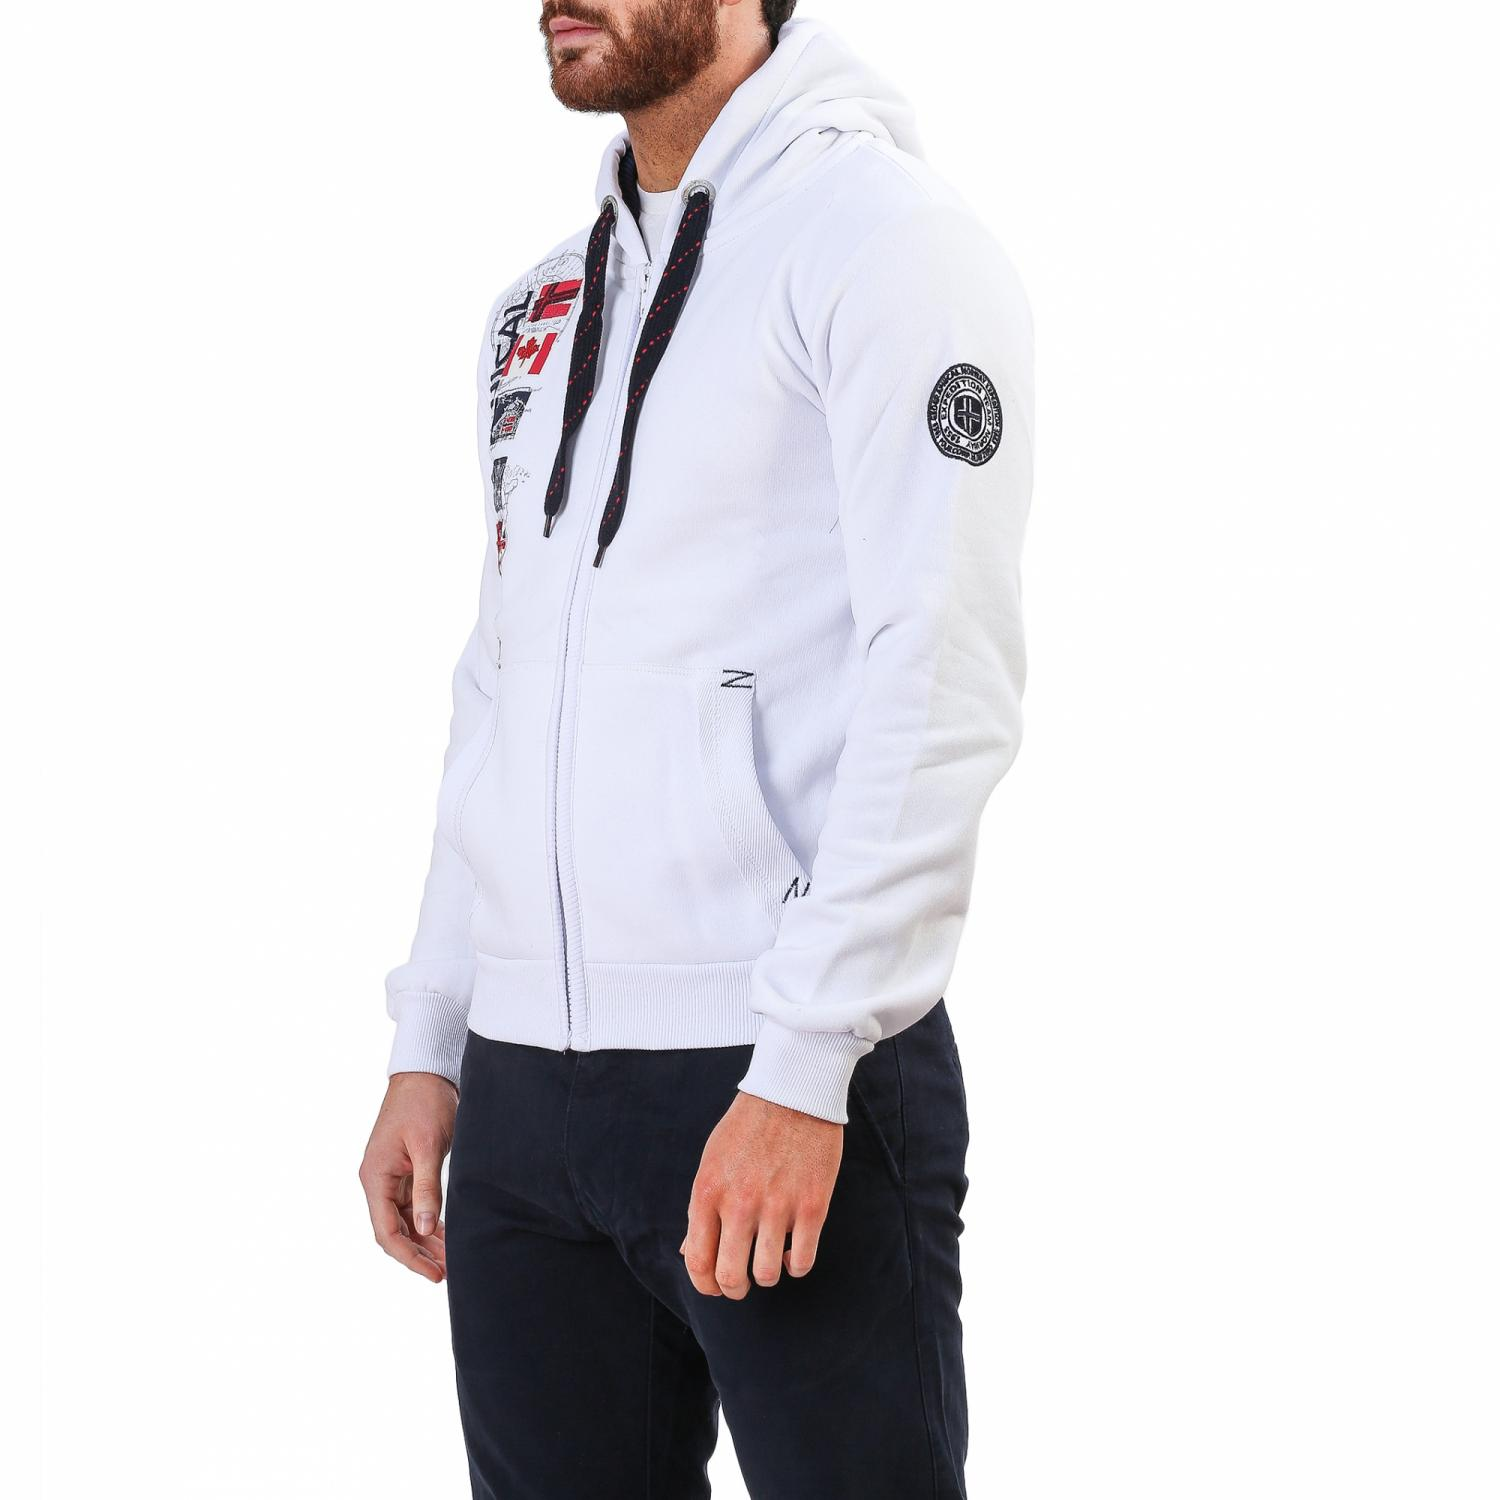 3fd55bffb0 Geographical Norway Ανδρικό Φουτερ Geographical Norway Ανδρικό Φουτερ  Geographical Norway Ανδρικό Φουτερ ...